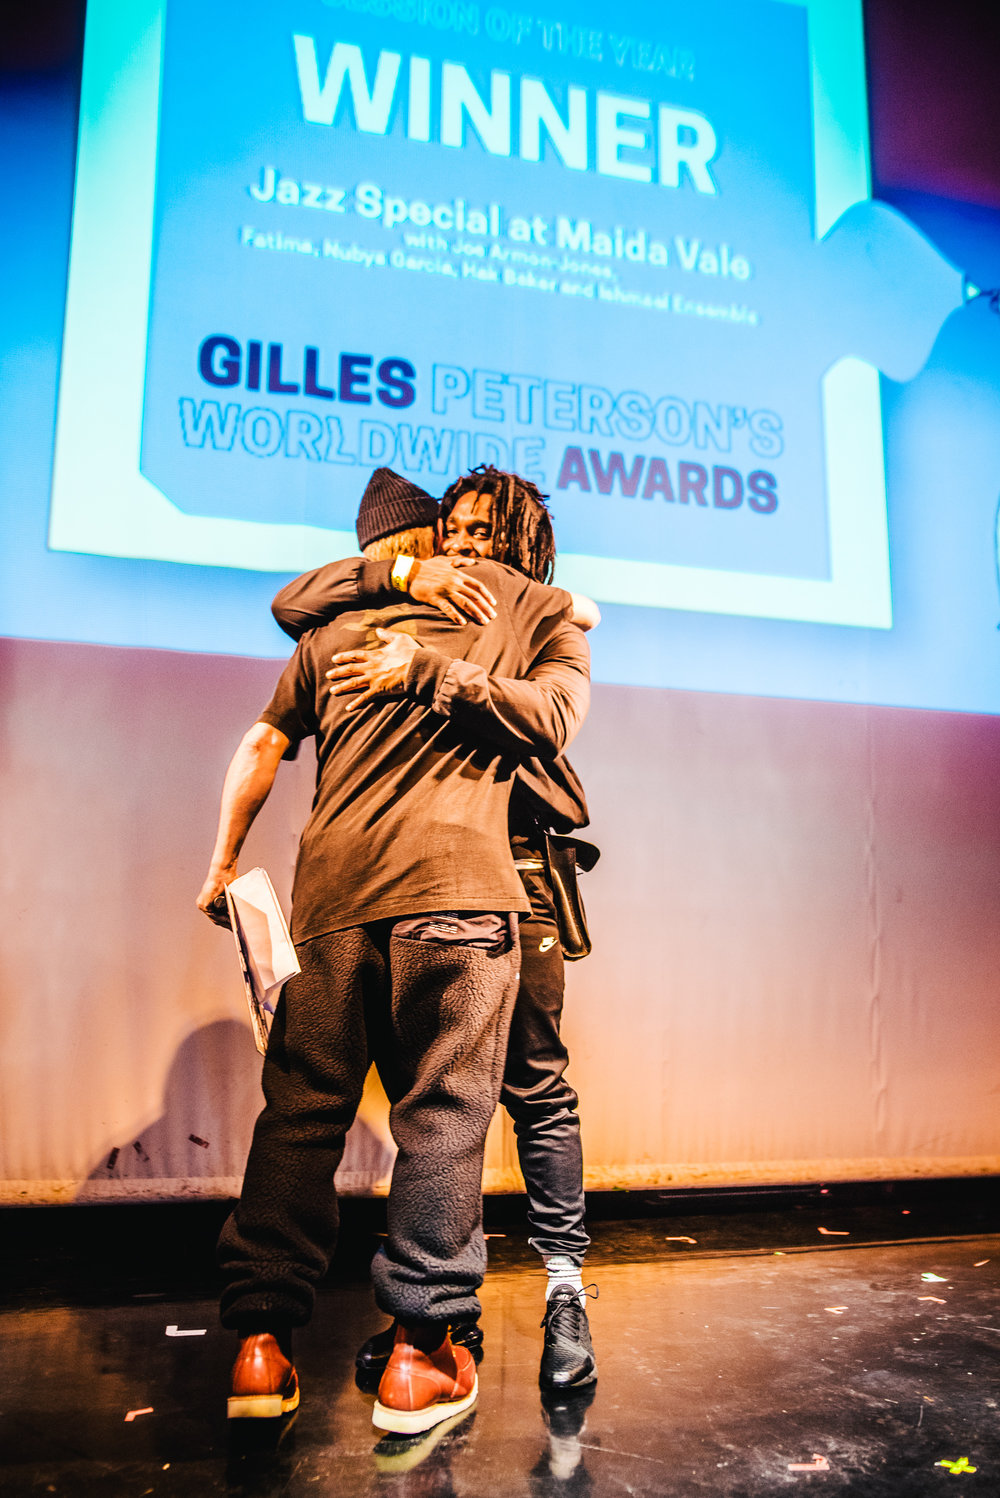 Copy of Gilles_Peterson_Worldwide_Awards_2019_January_2019_Rob_Jones_@hirobjones_ROB_3889.jpg